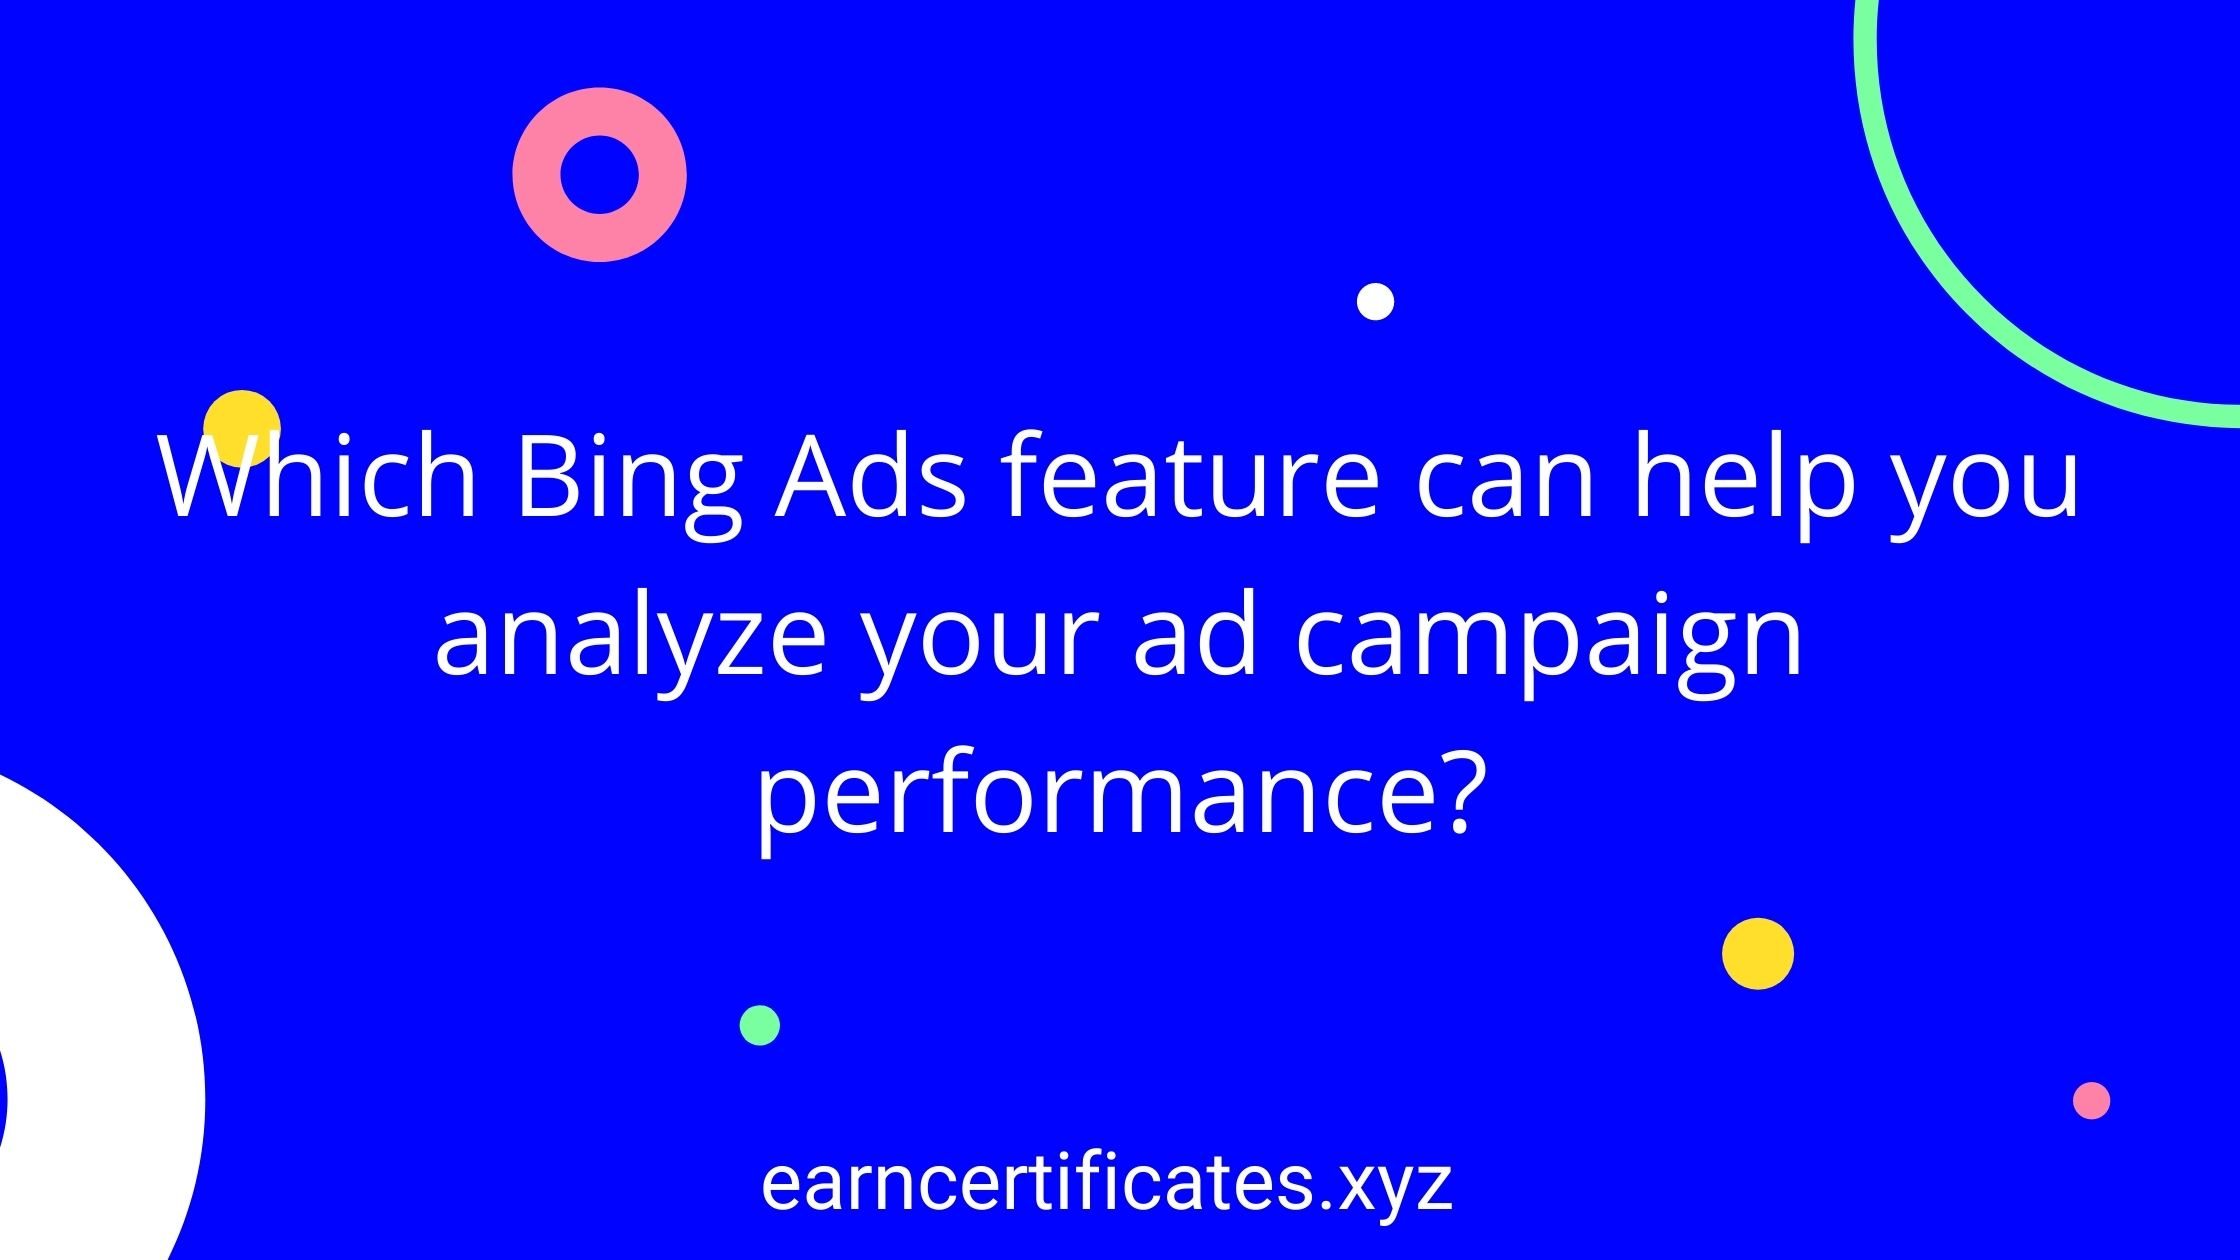 Which Bing Ads feature can help you analyze your ad campaign performance?